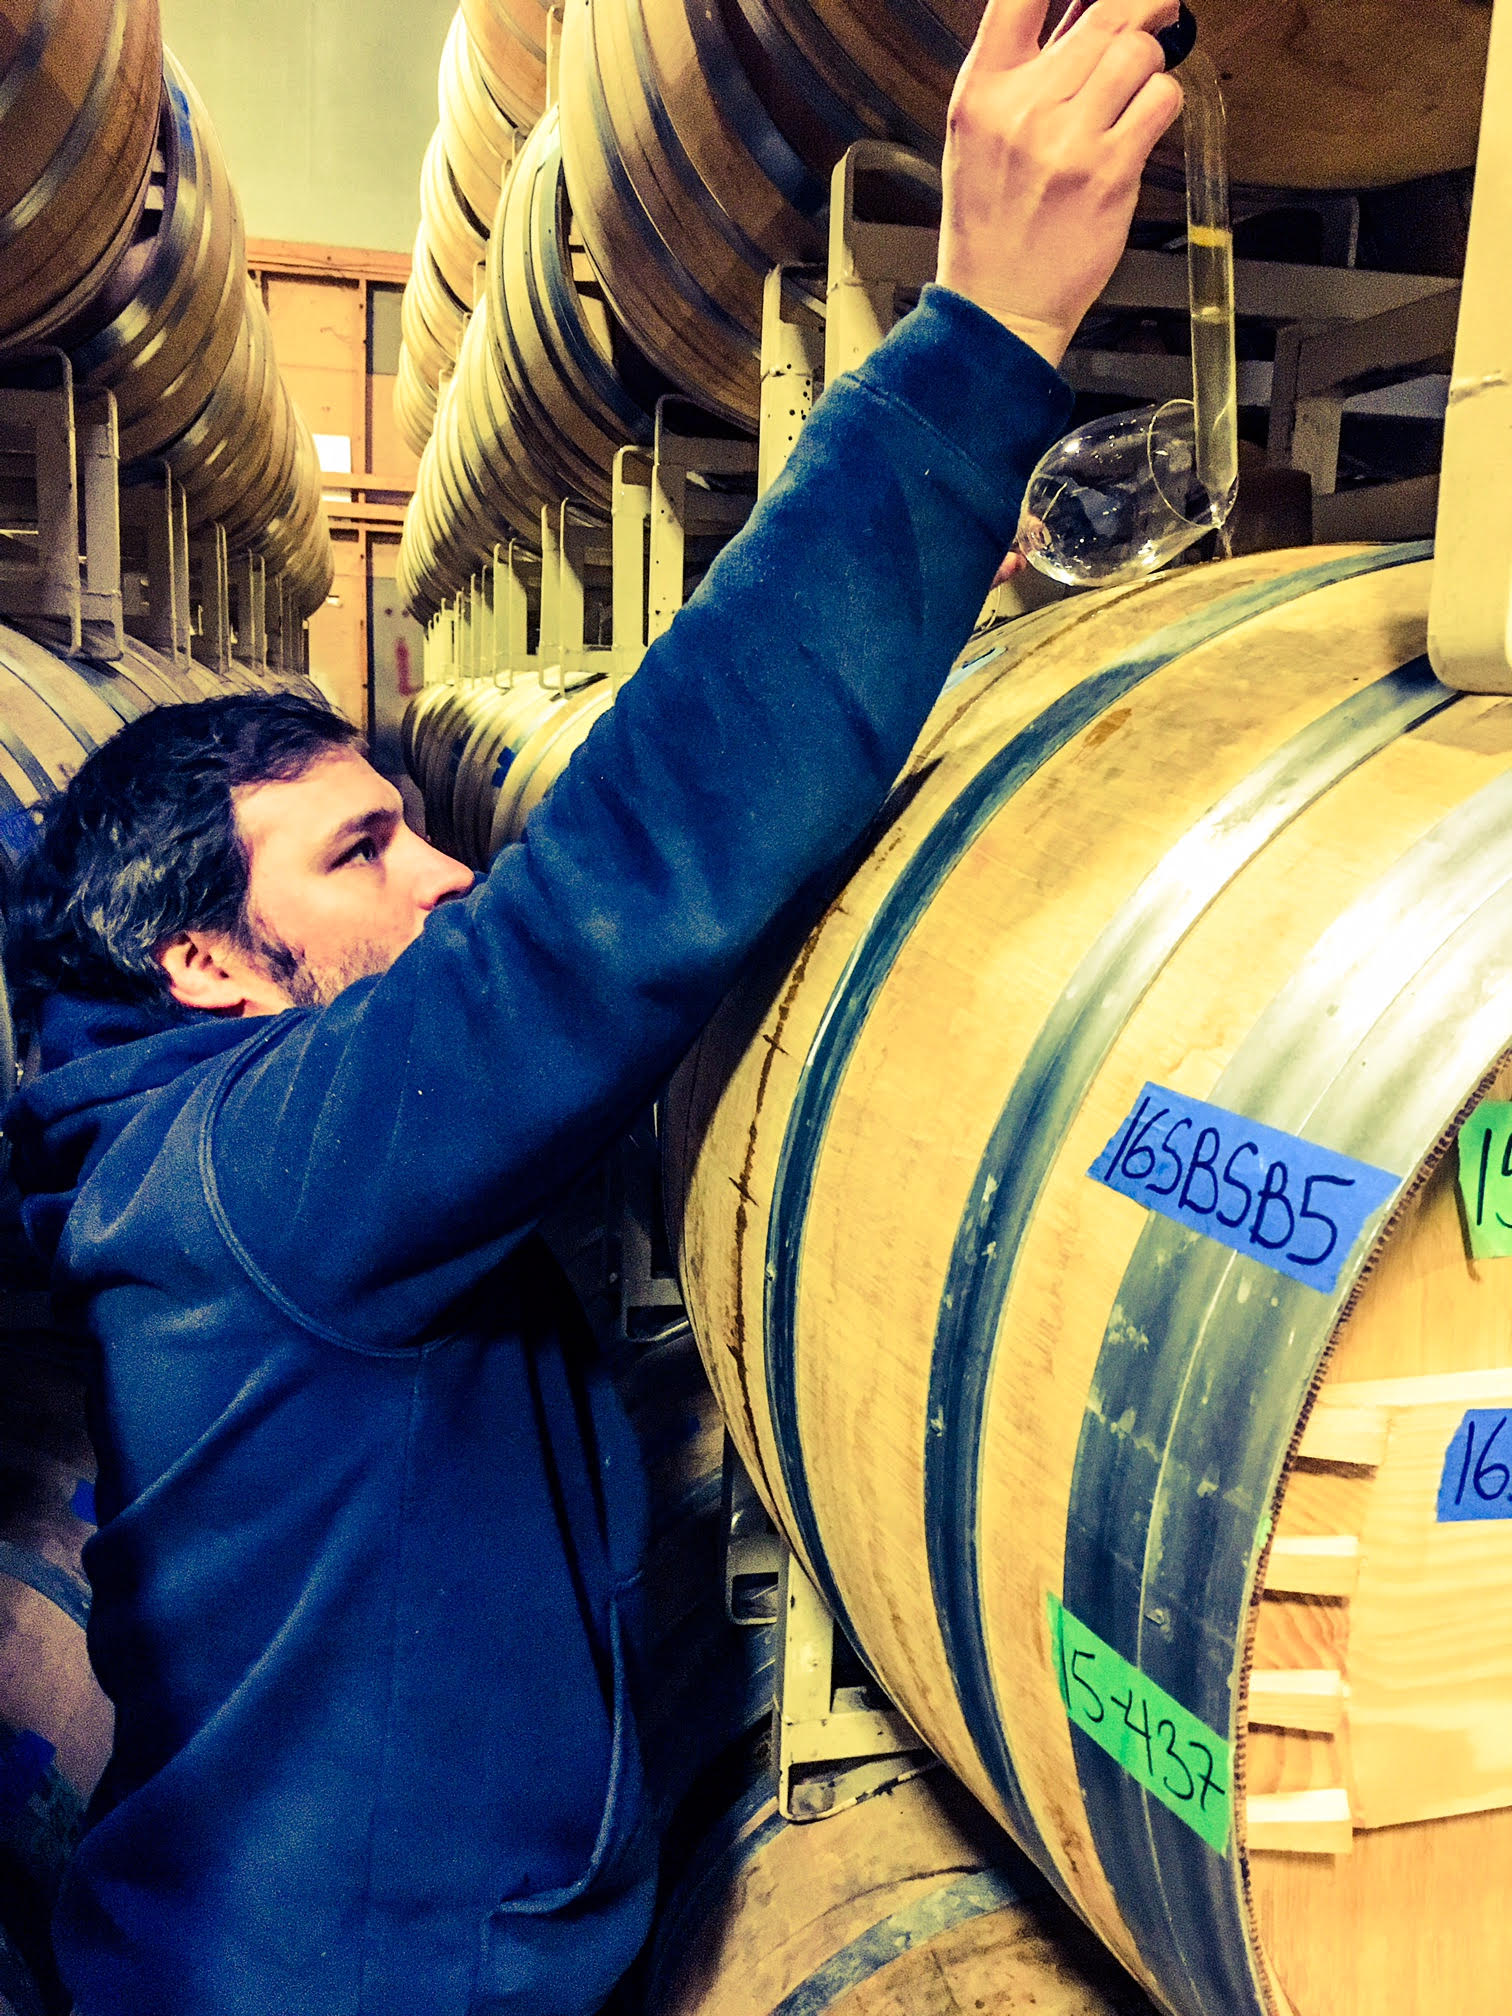 I had a great time checking out barrel samples with superstar winemaker, Jason Gorski, of DeLille Cellars